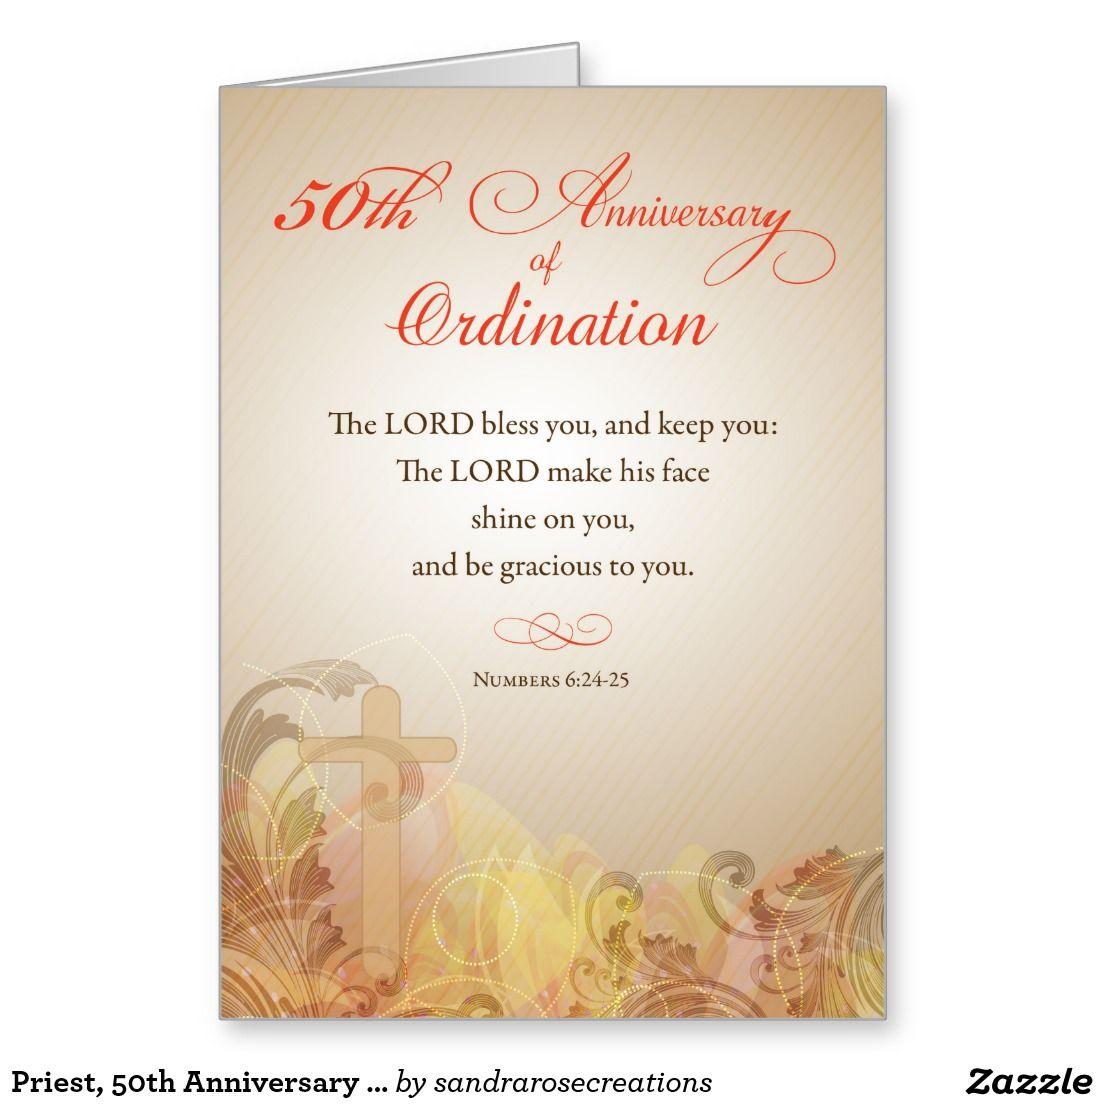 Priest 50th Anniversary Of Ordination Blessing Card Images